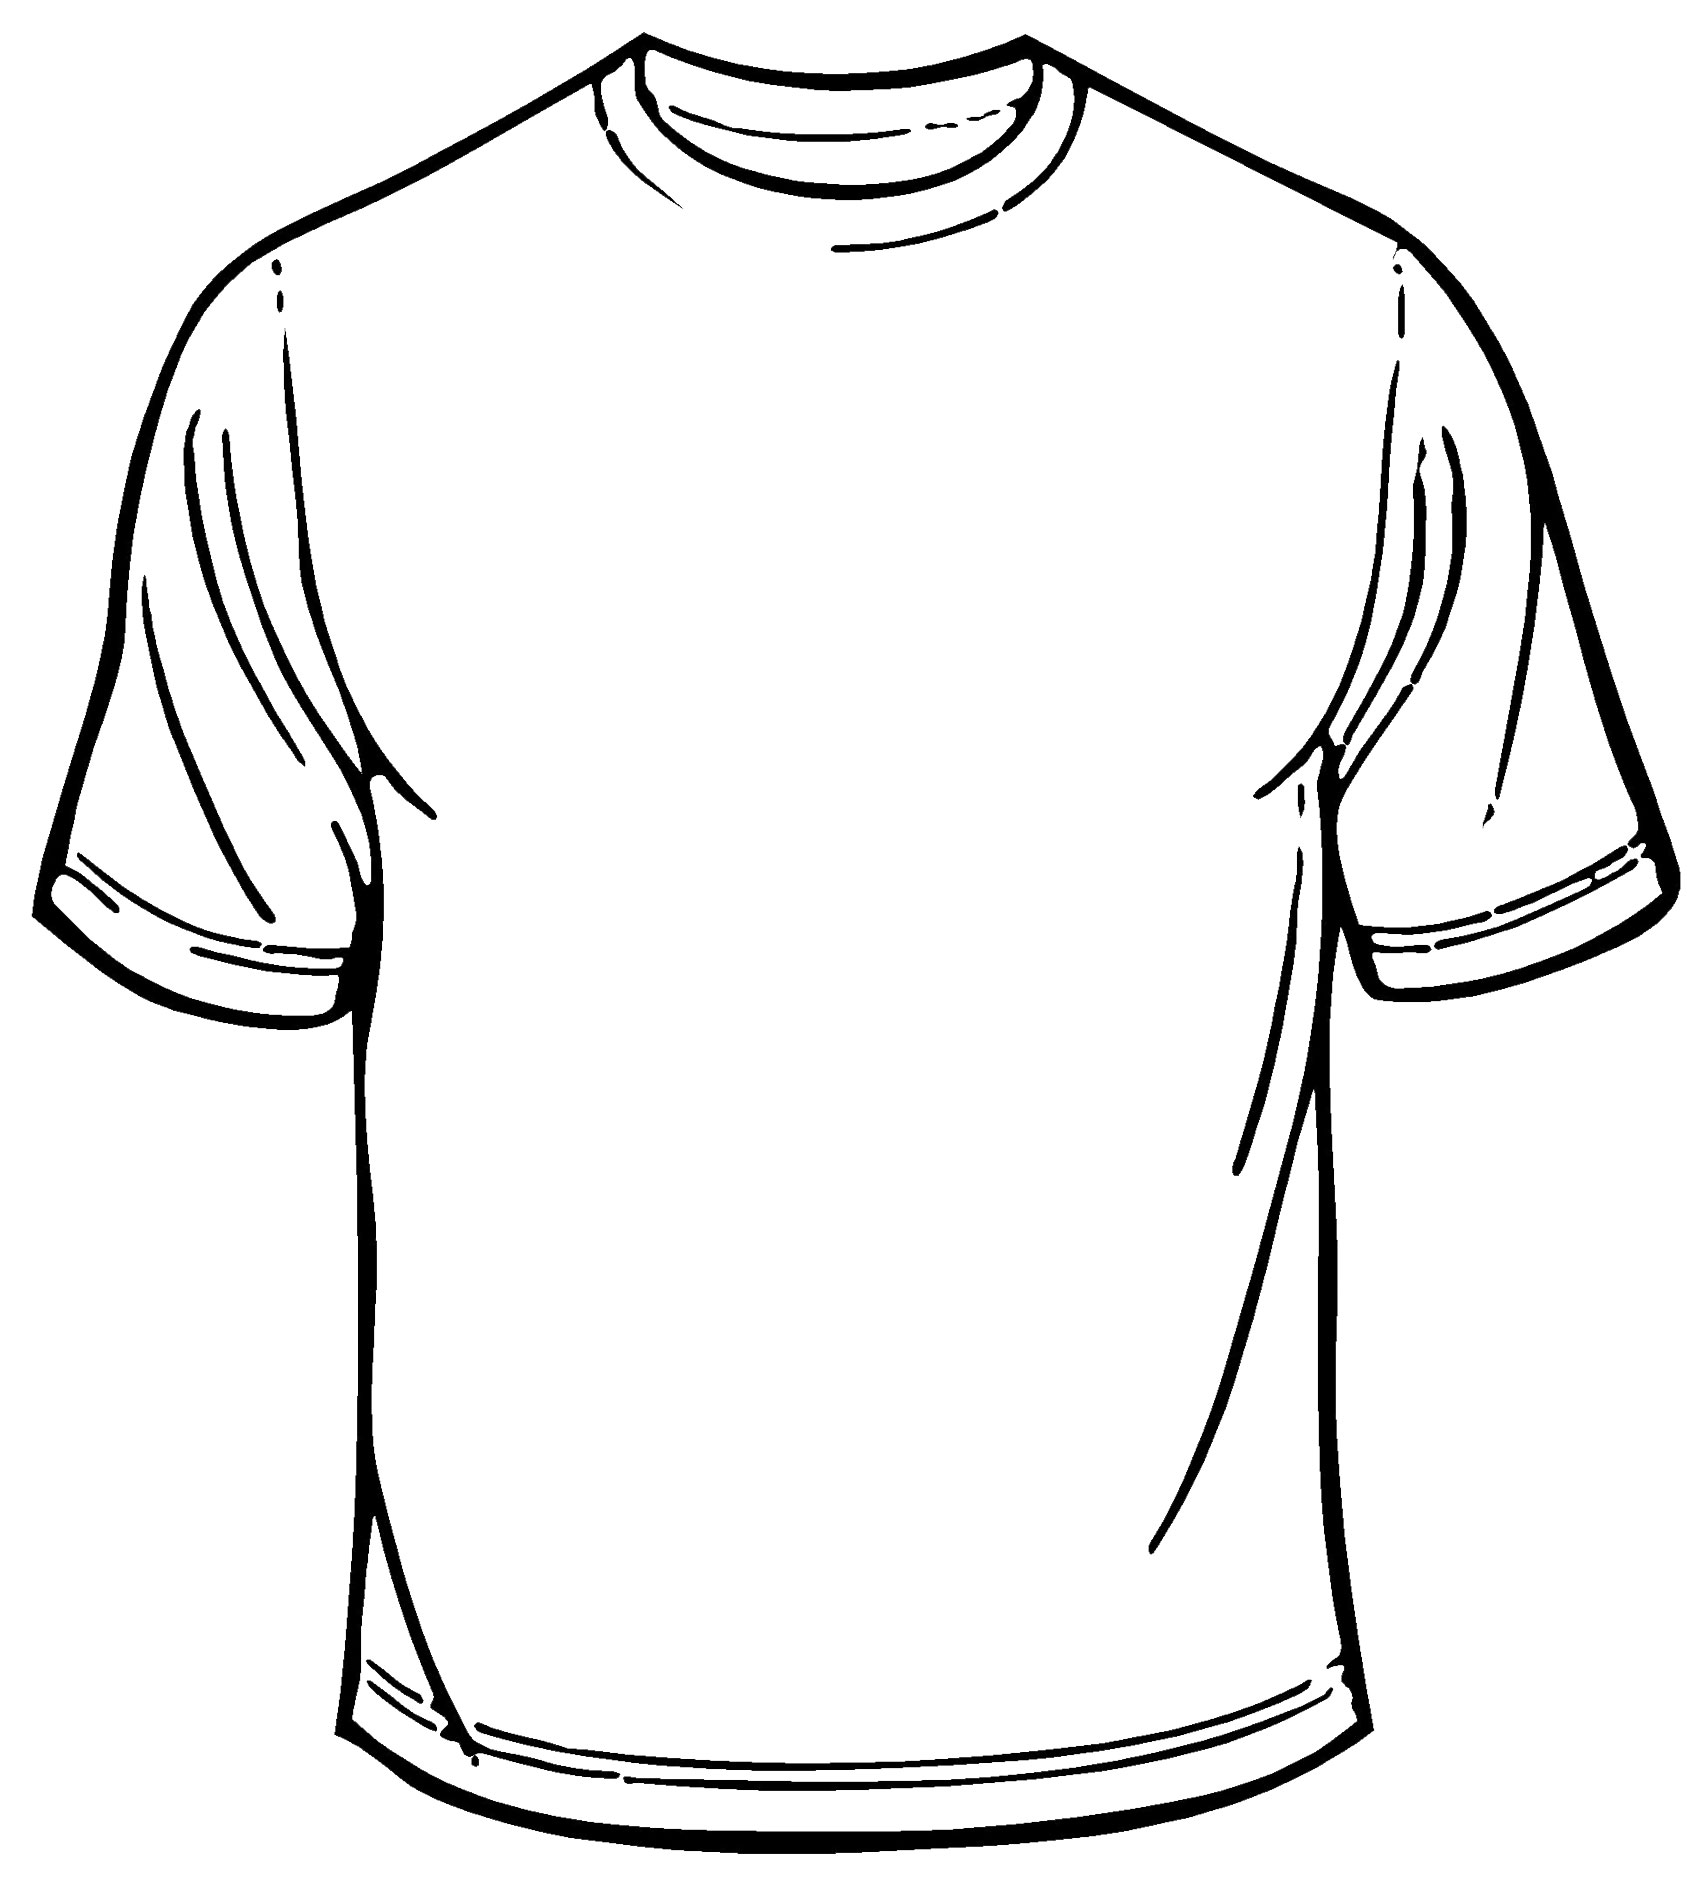 Png Art Shirts - Collection Clipart Blank T Shirt Png #30266 - Free Icons and PNG ...